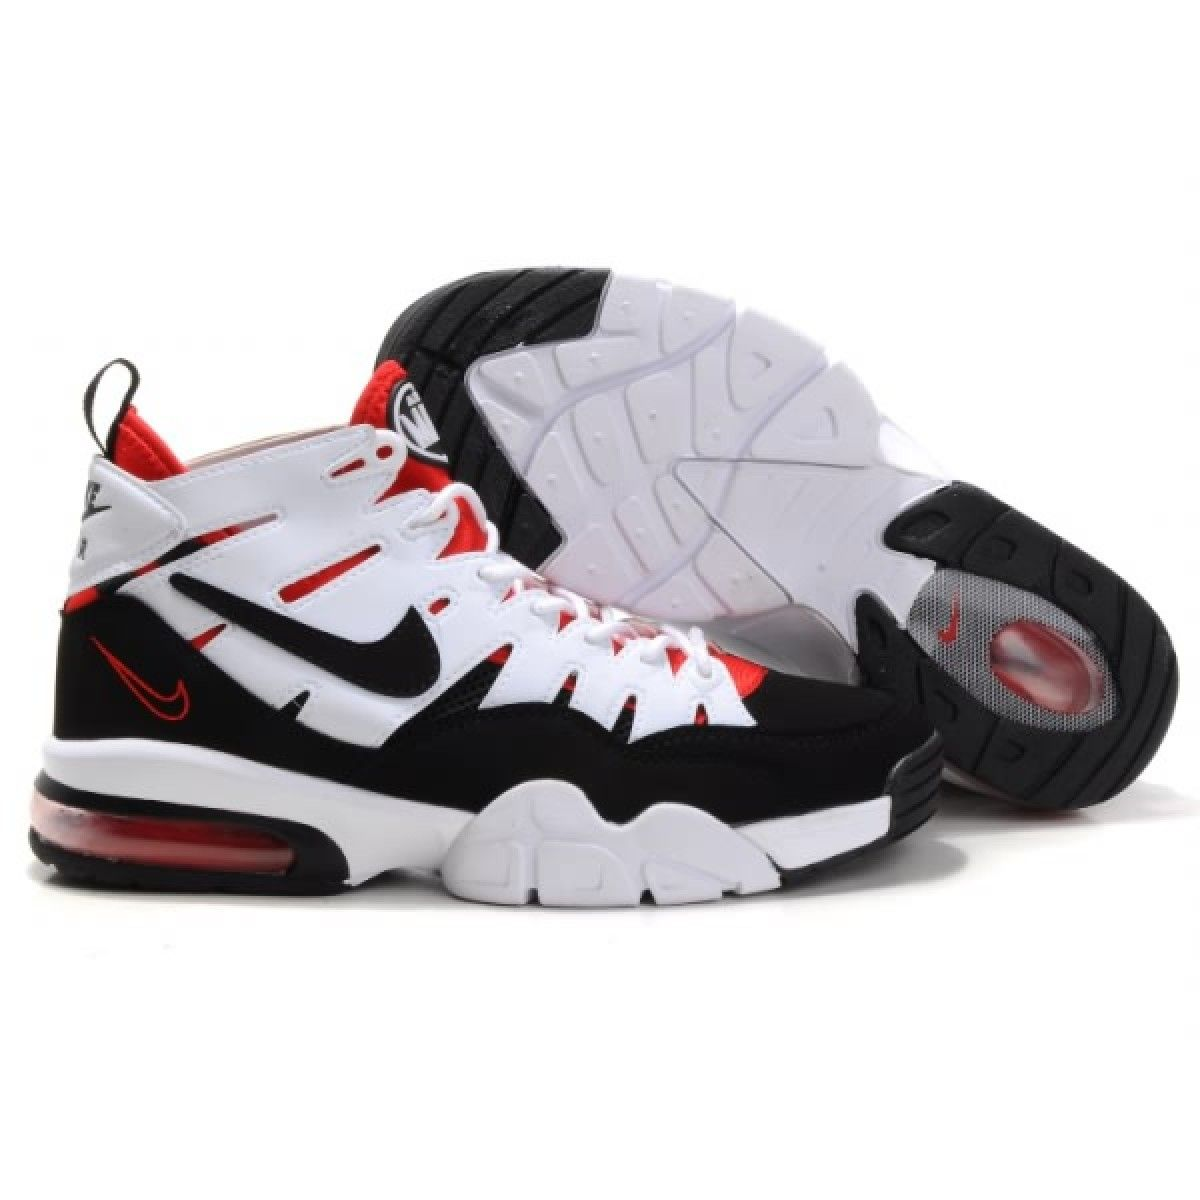 100% authentic a9f0a 1d77f Nike Air Max 2 Trainer  94 Retro White Black Red Sneakers Shoes on .